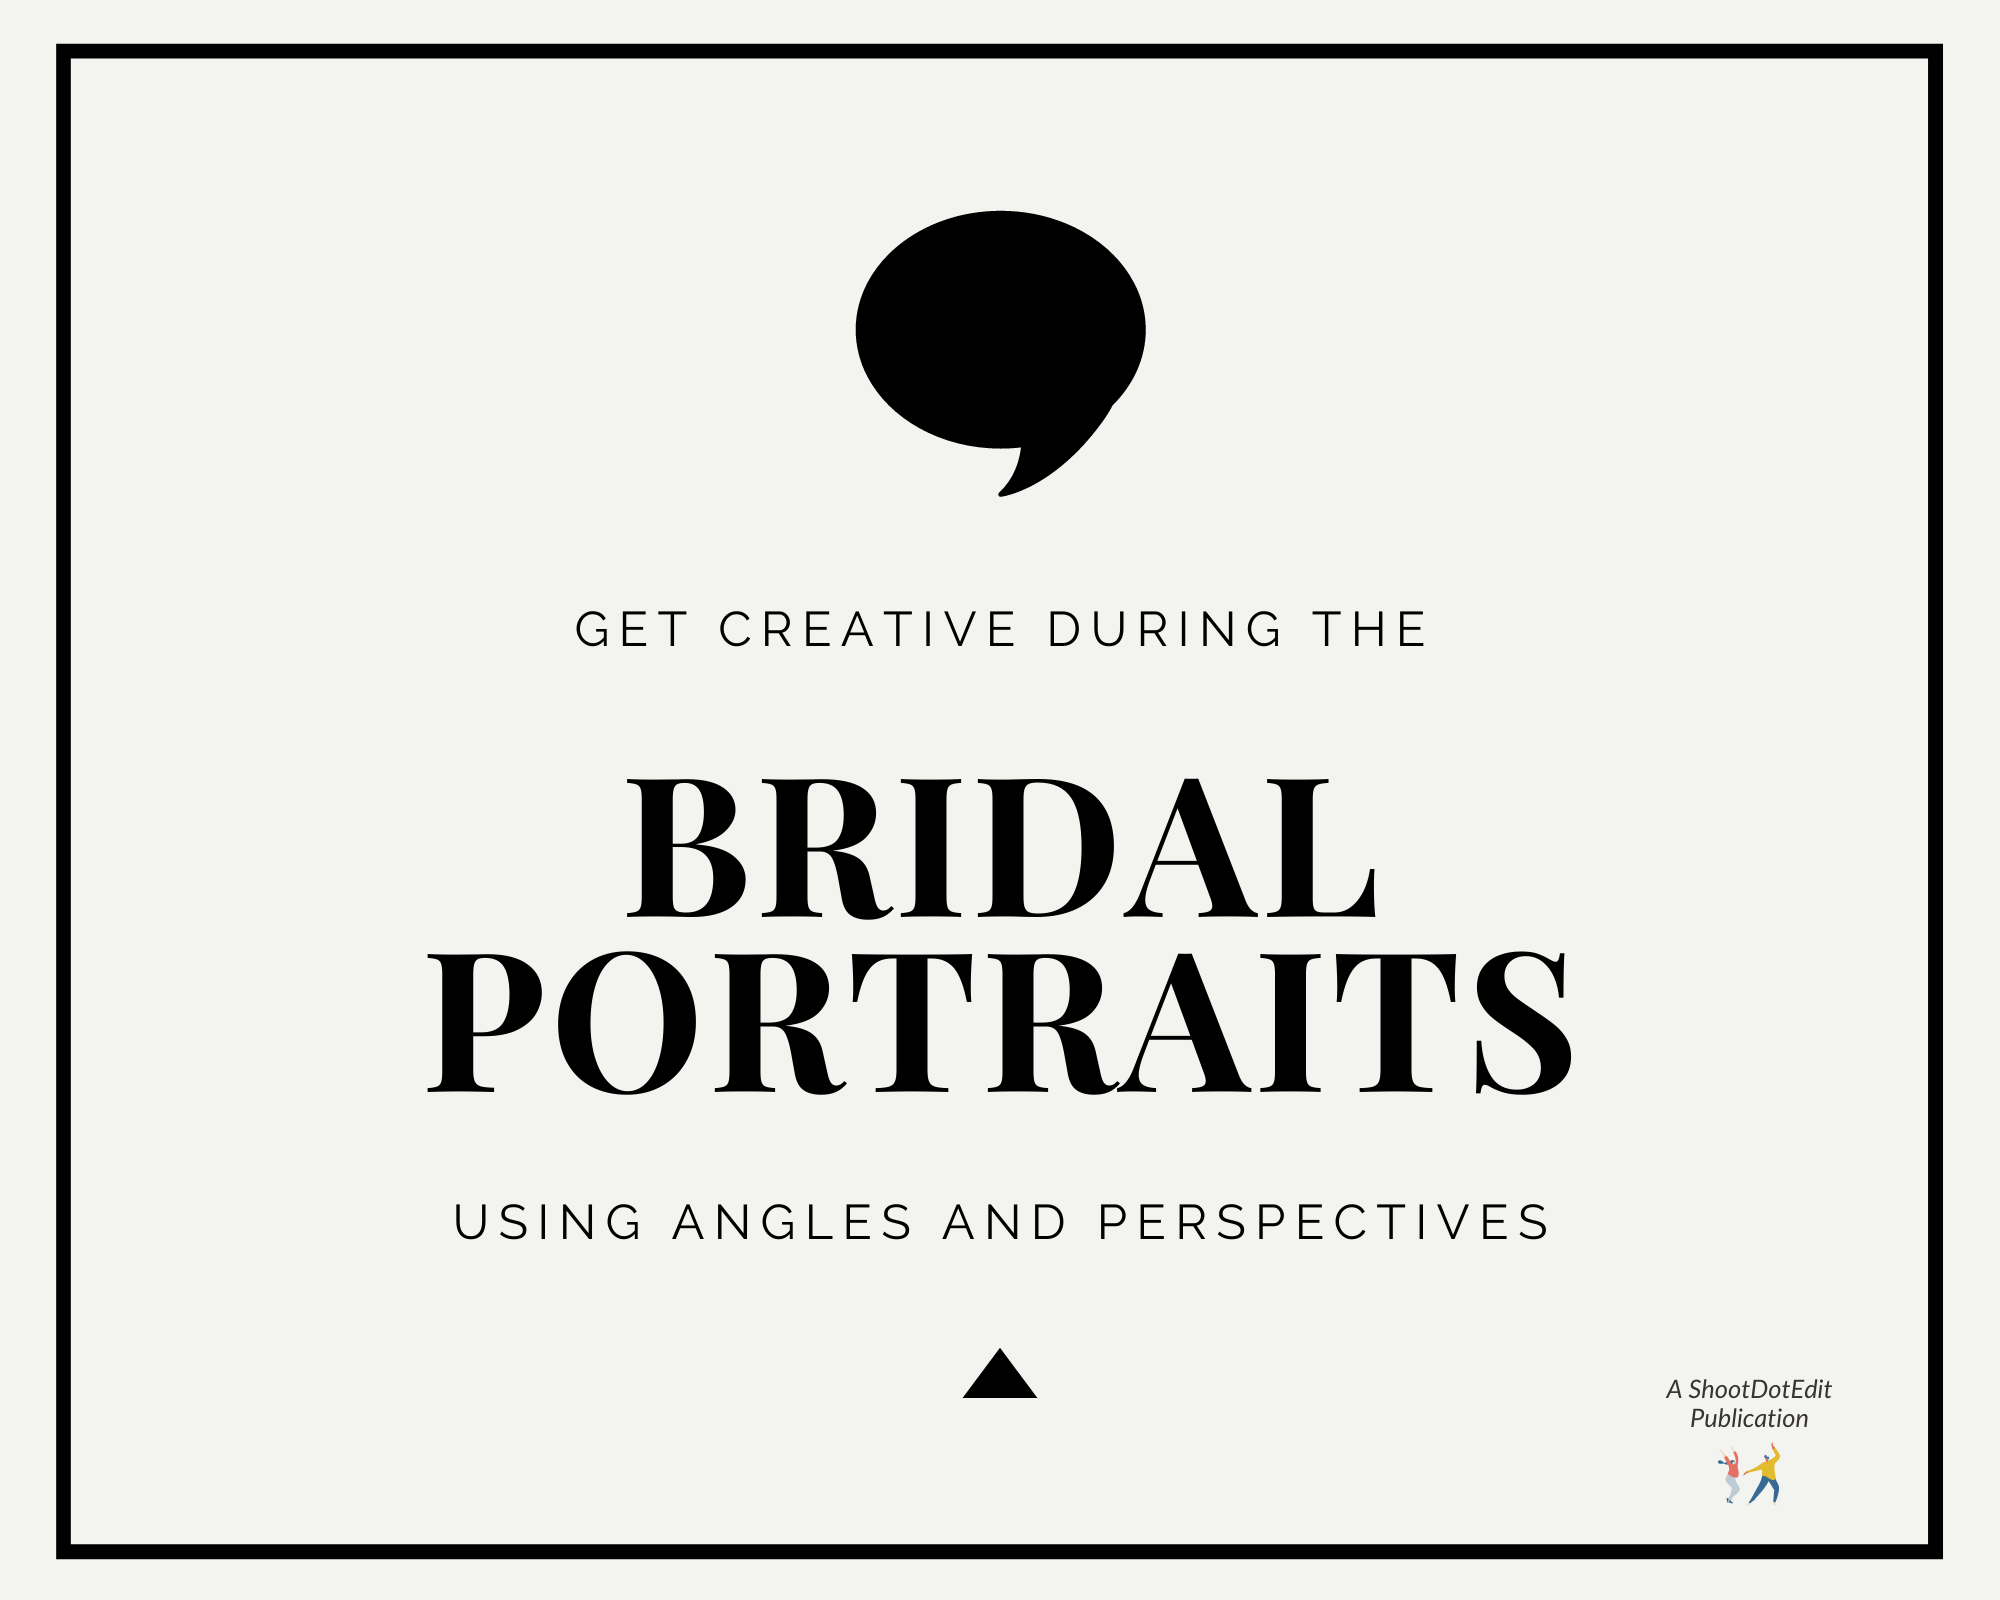 Infographic stating get creative during the bridal portraits using angles and perspectives